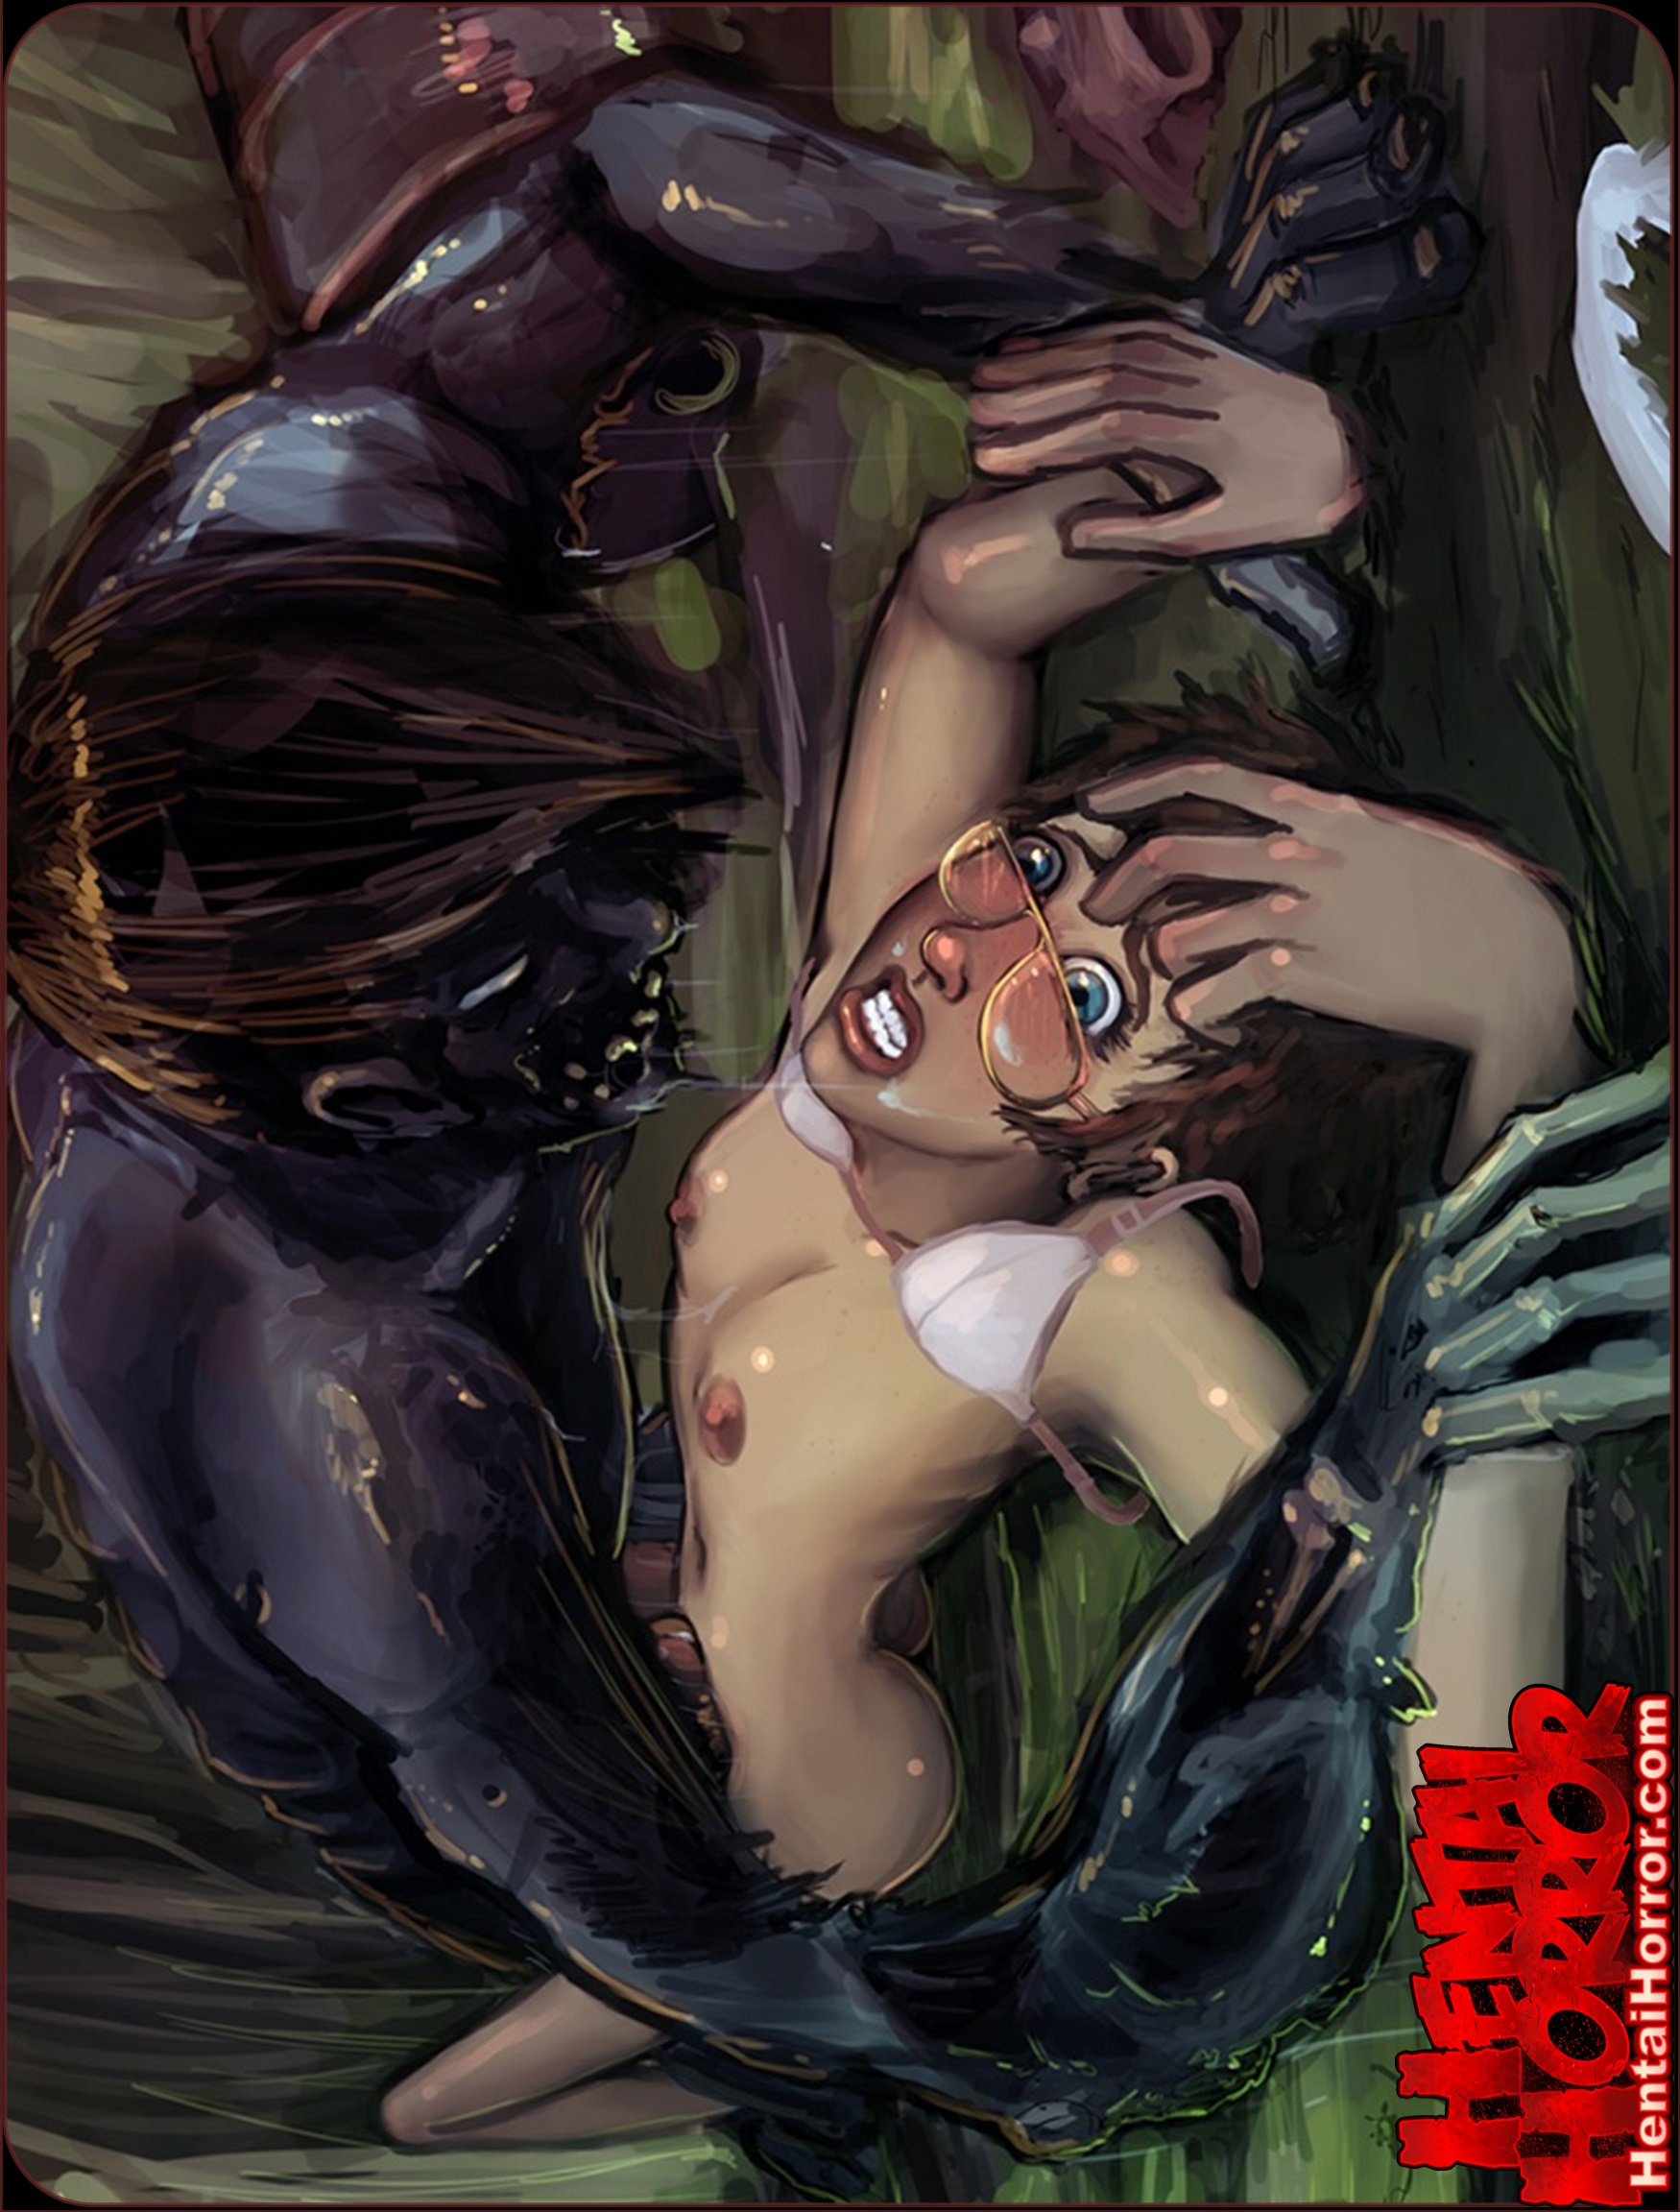 Zombie sex cartoon